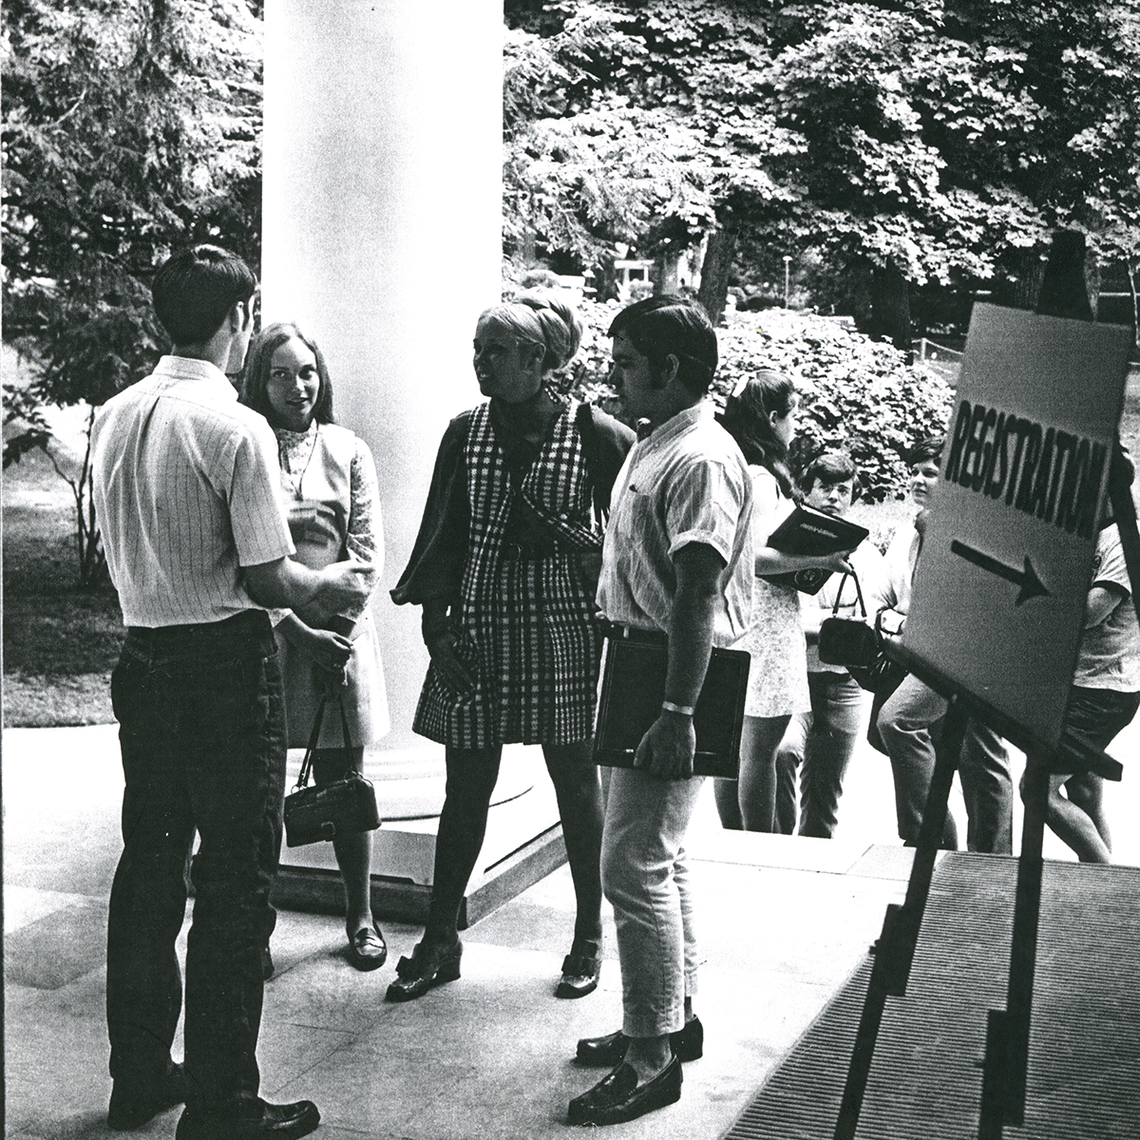 Group of students beside a sign for registration, 1969